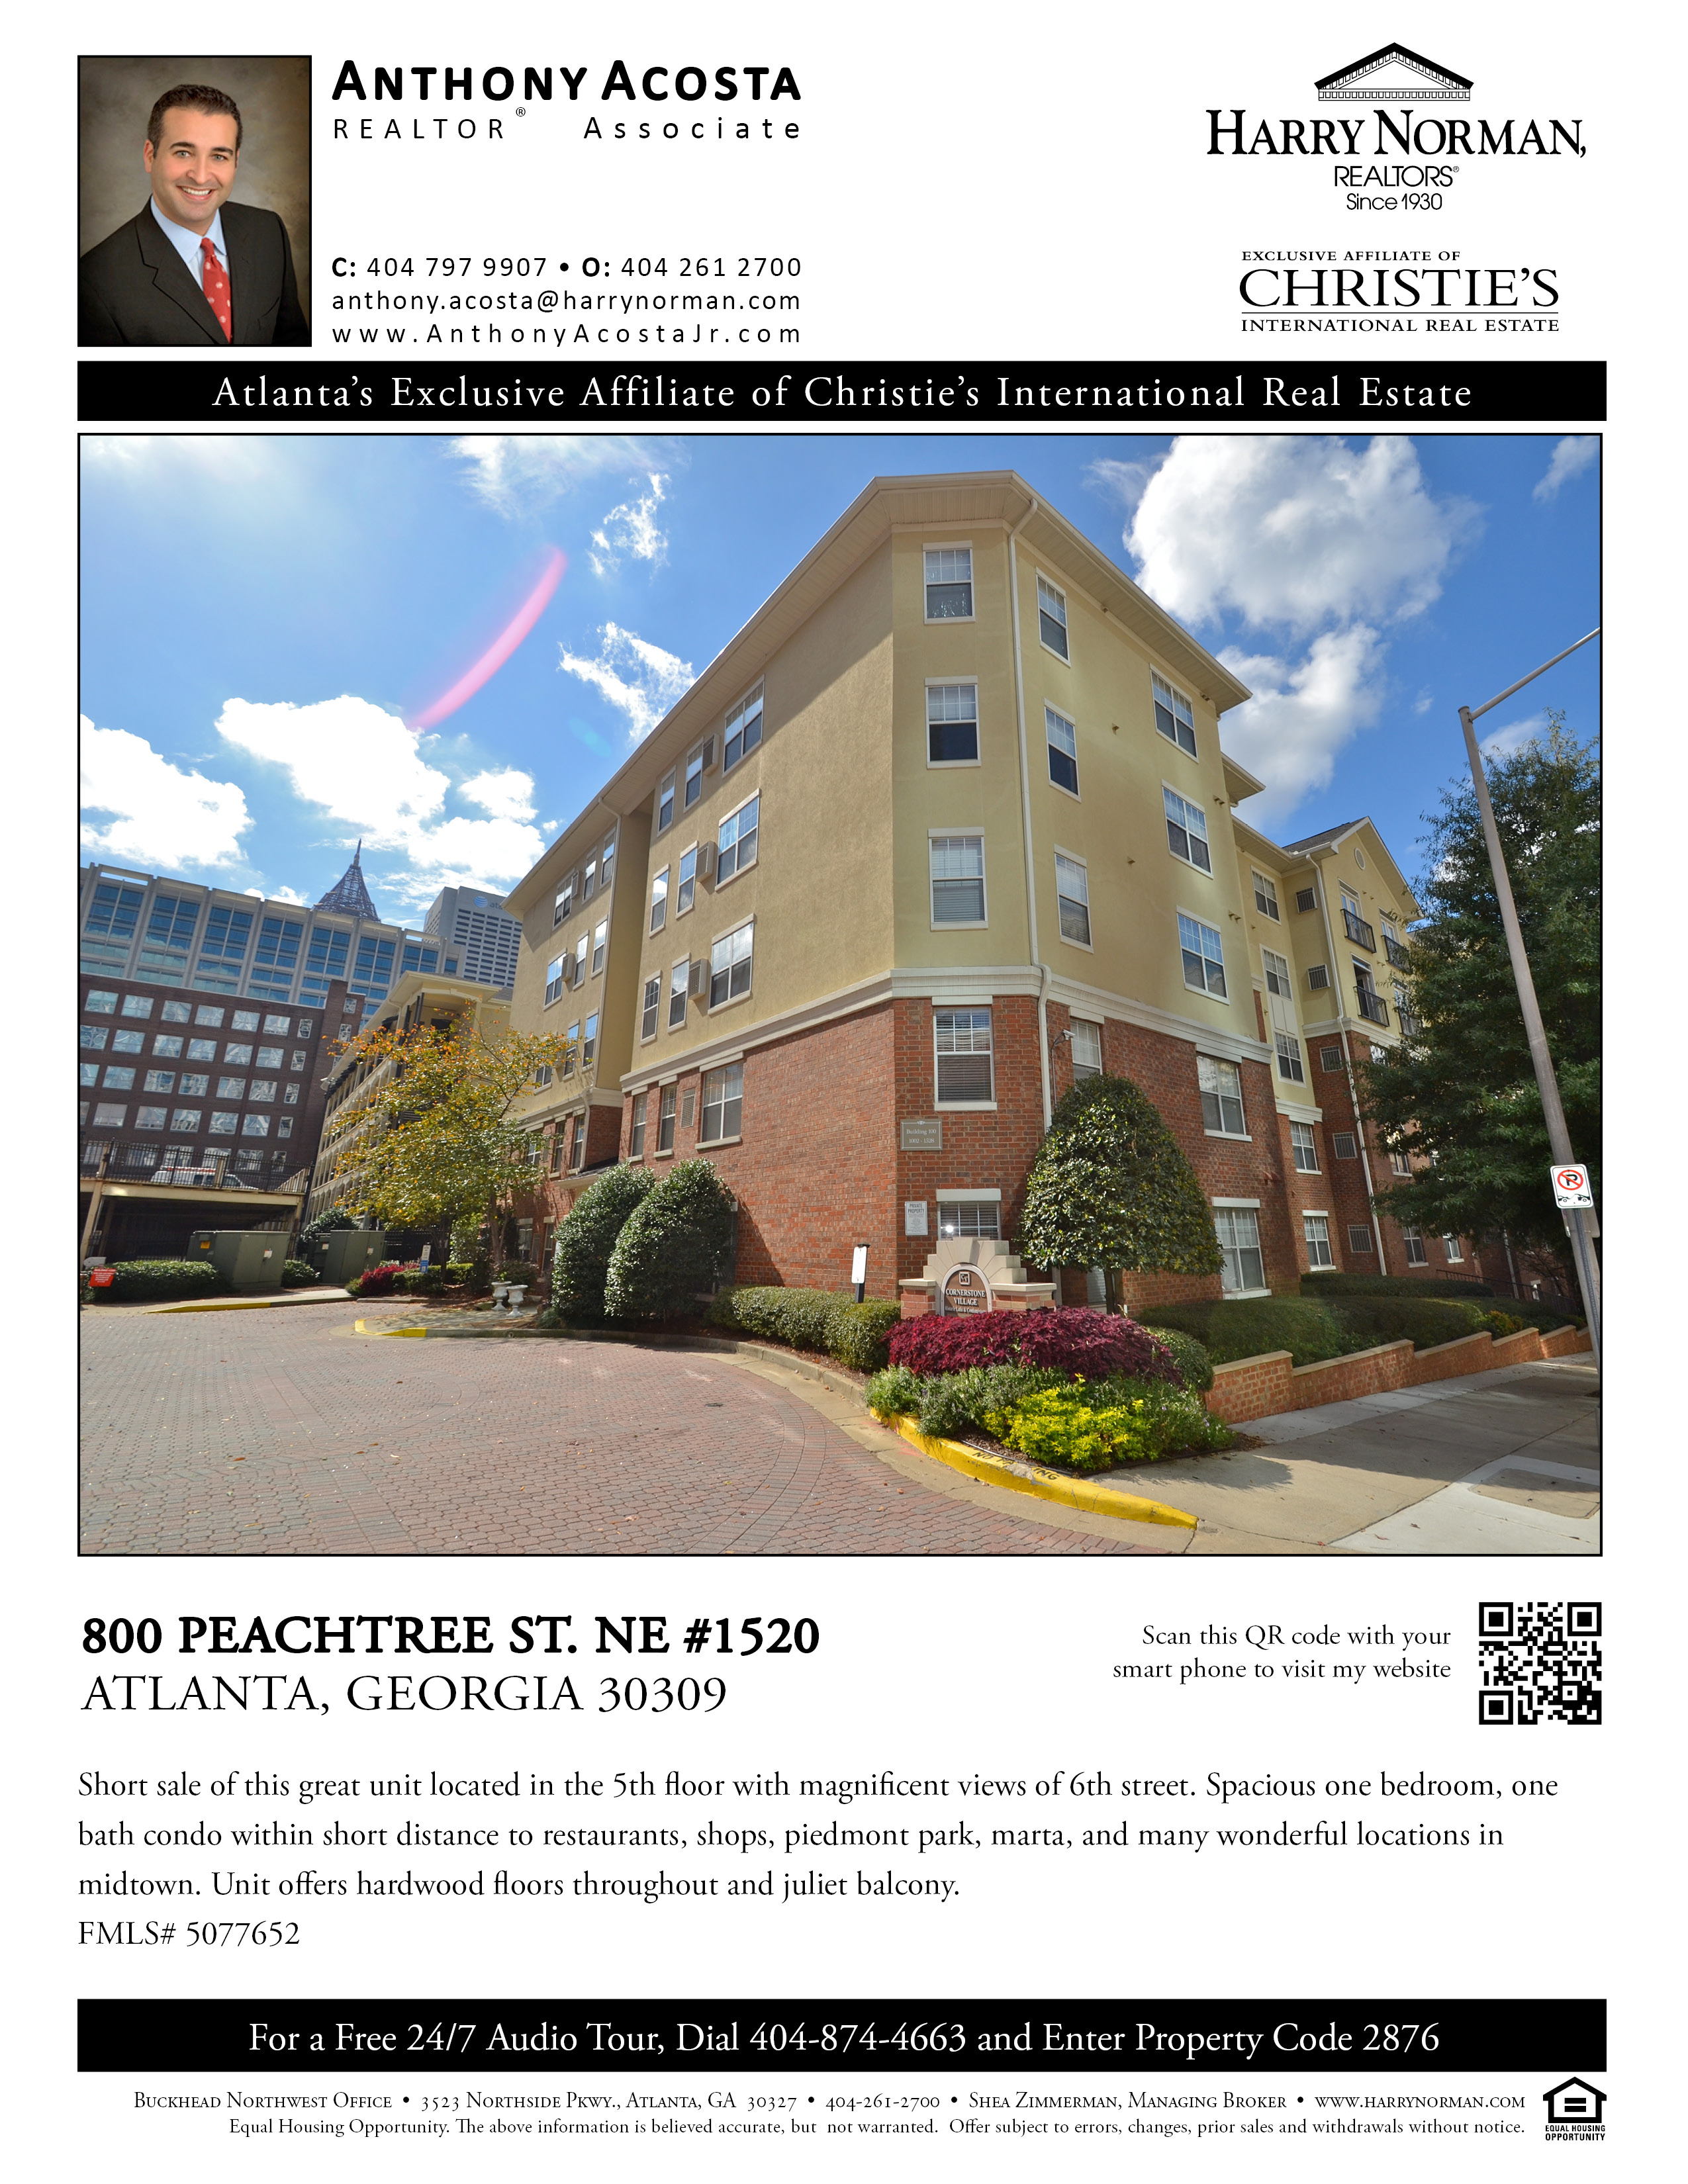 committed to excellence in real estate allatlantacondos com just listed at 800 peachtree street unit 1520